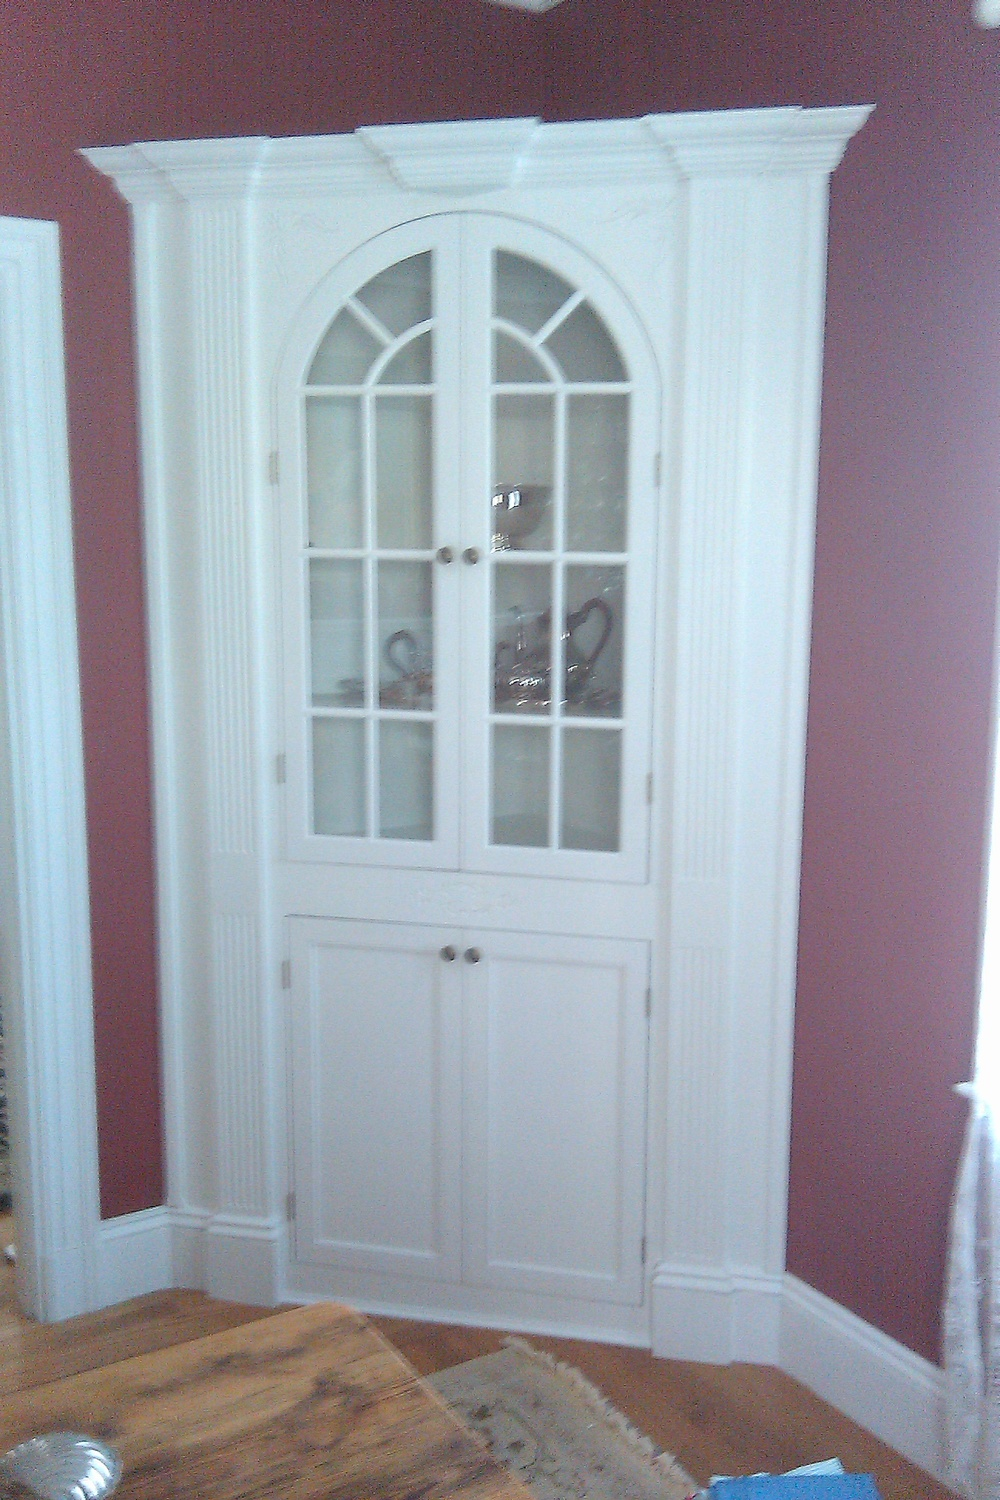 1 Dining Room China Cabinet Dorchester.jpg